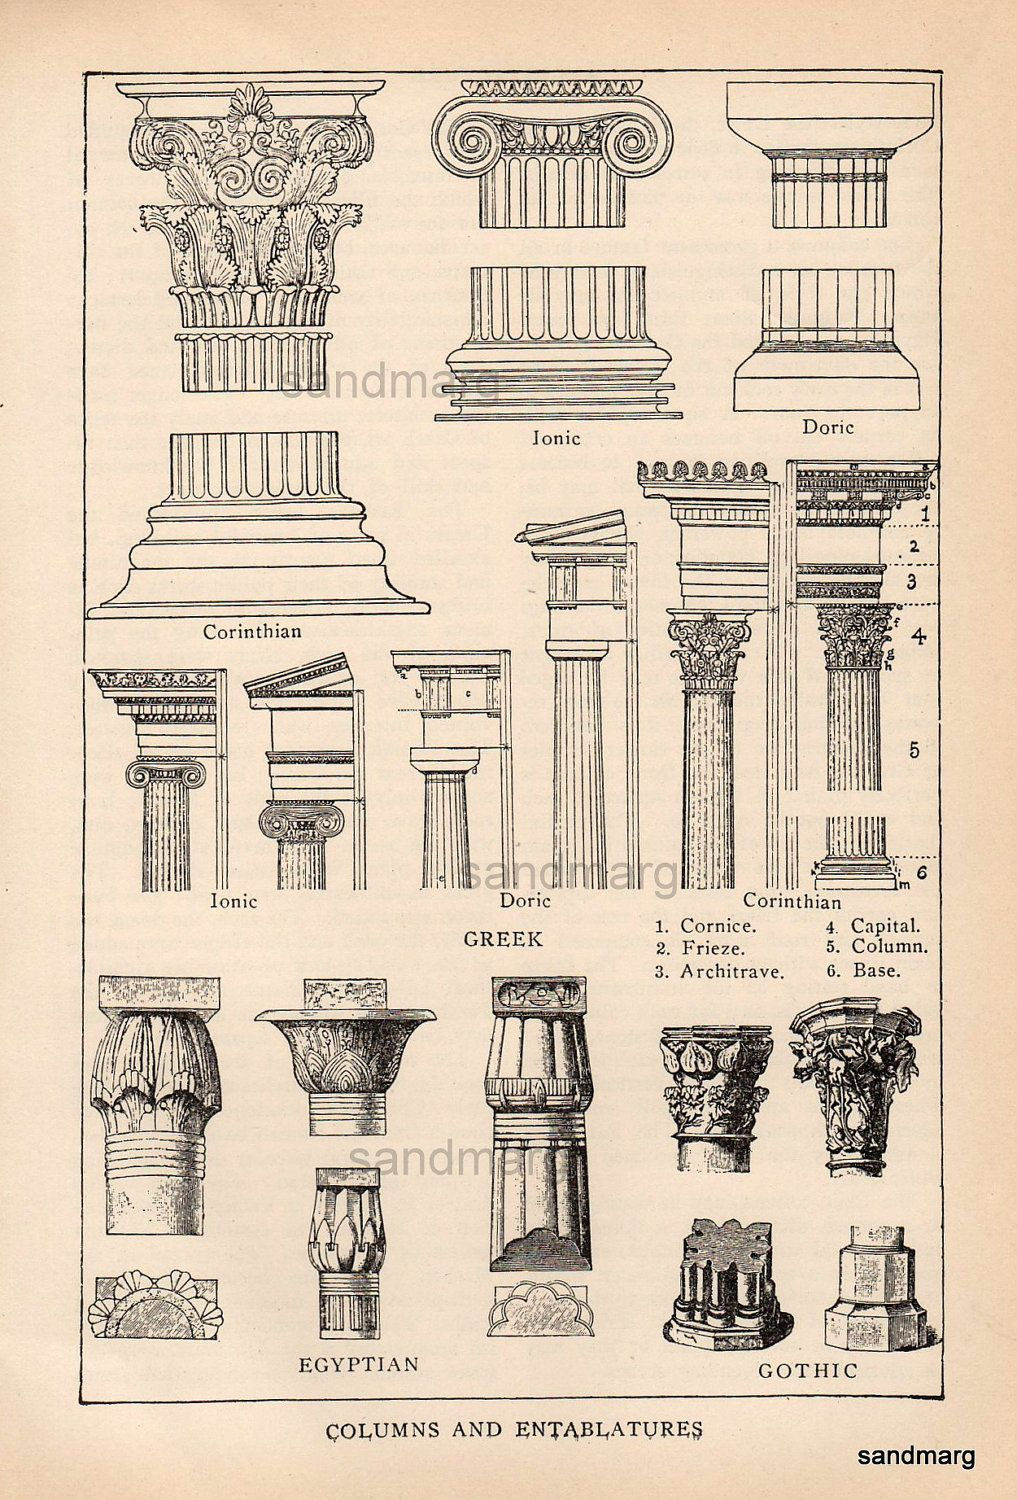 Antique Edwardian Architectural Print Of Columns And Entablatures Egyptian Gothic Greek Corinthian